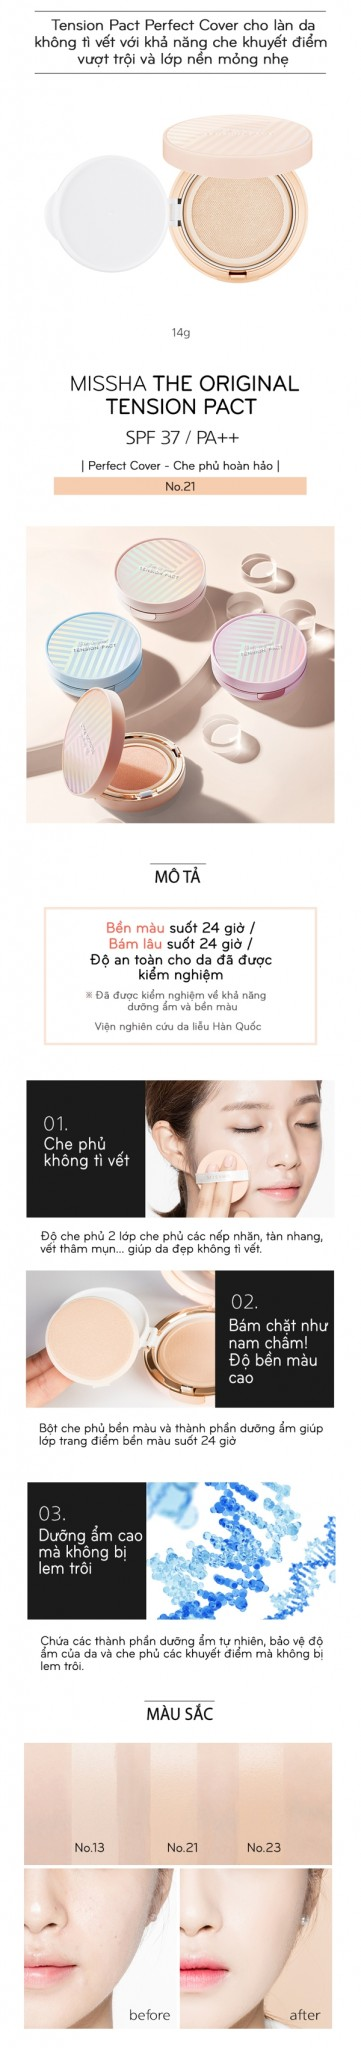 Phan nuoc Missha the original tension pact (8)